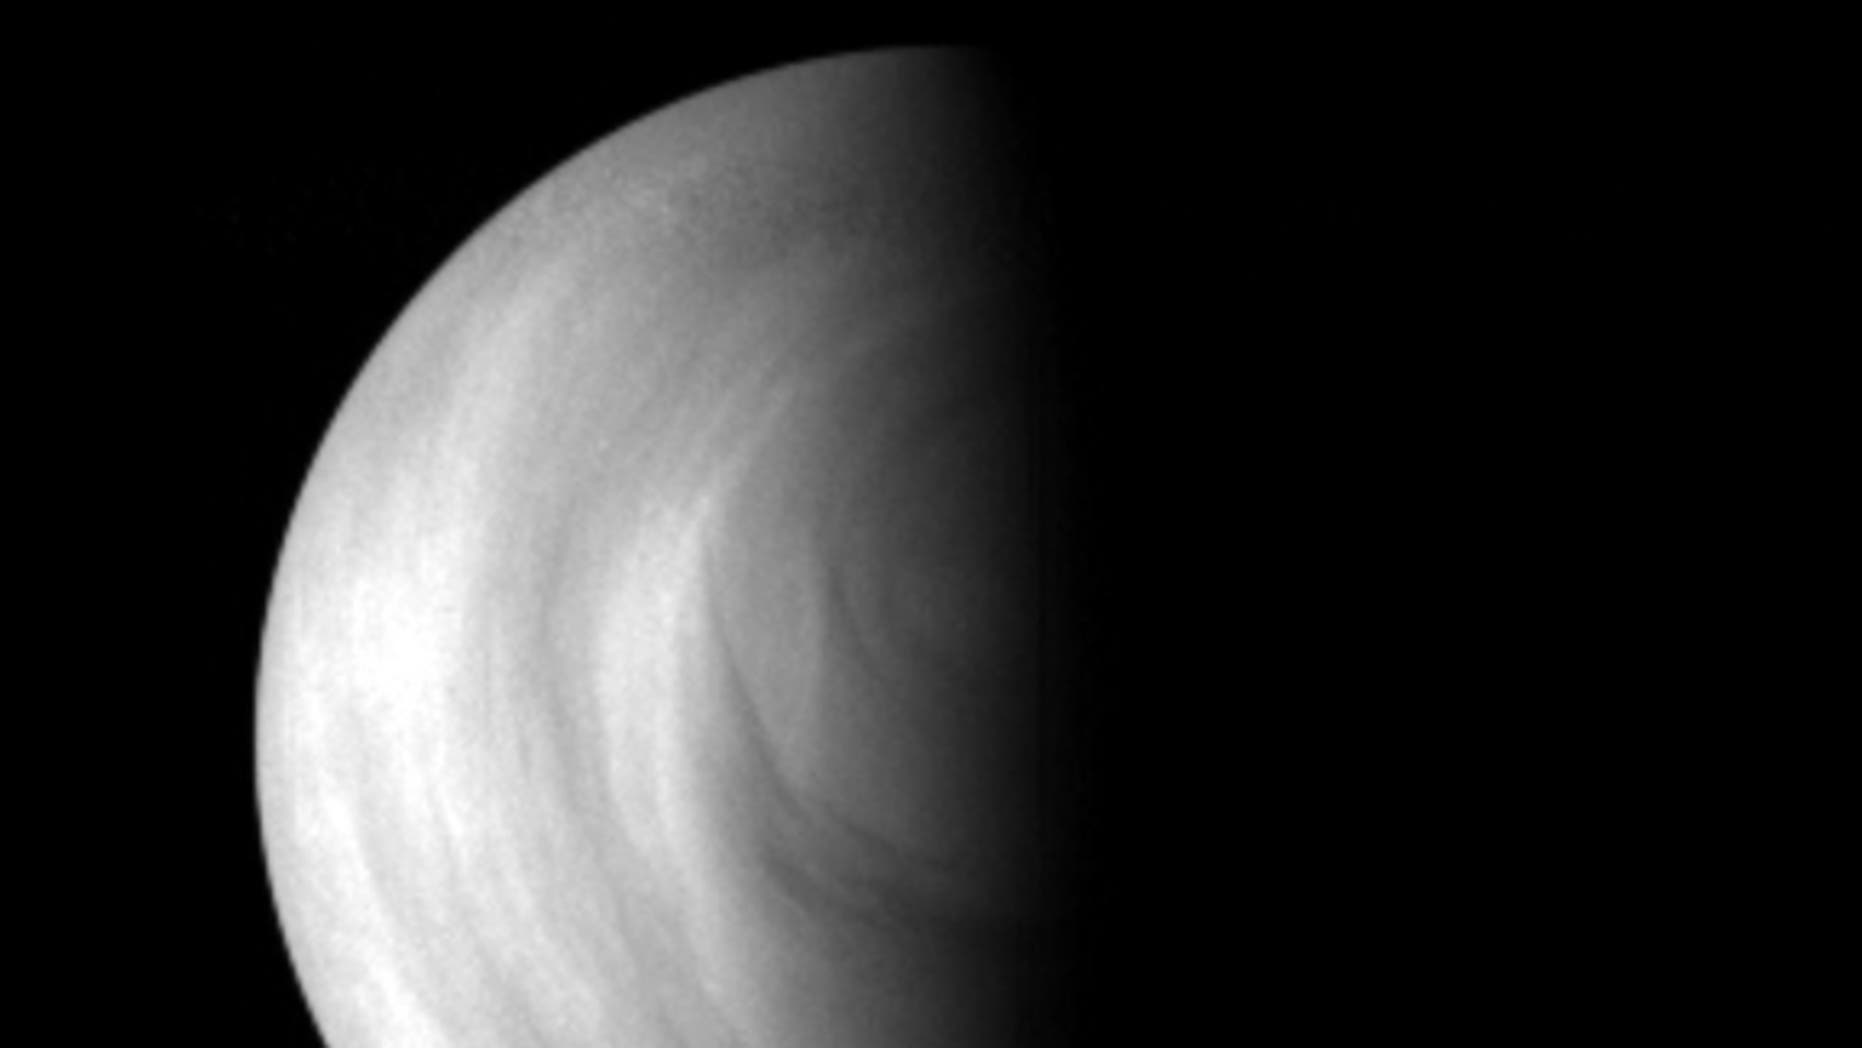 The terminator of Venus (the line between day and night) as seen by the Venus Express spacecraft in May 2006.